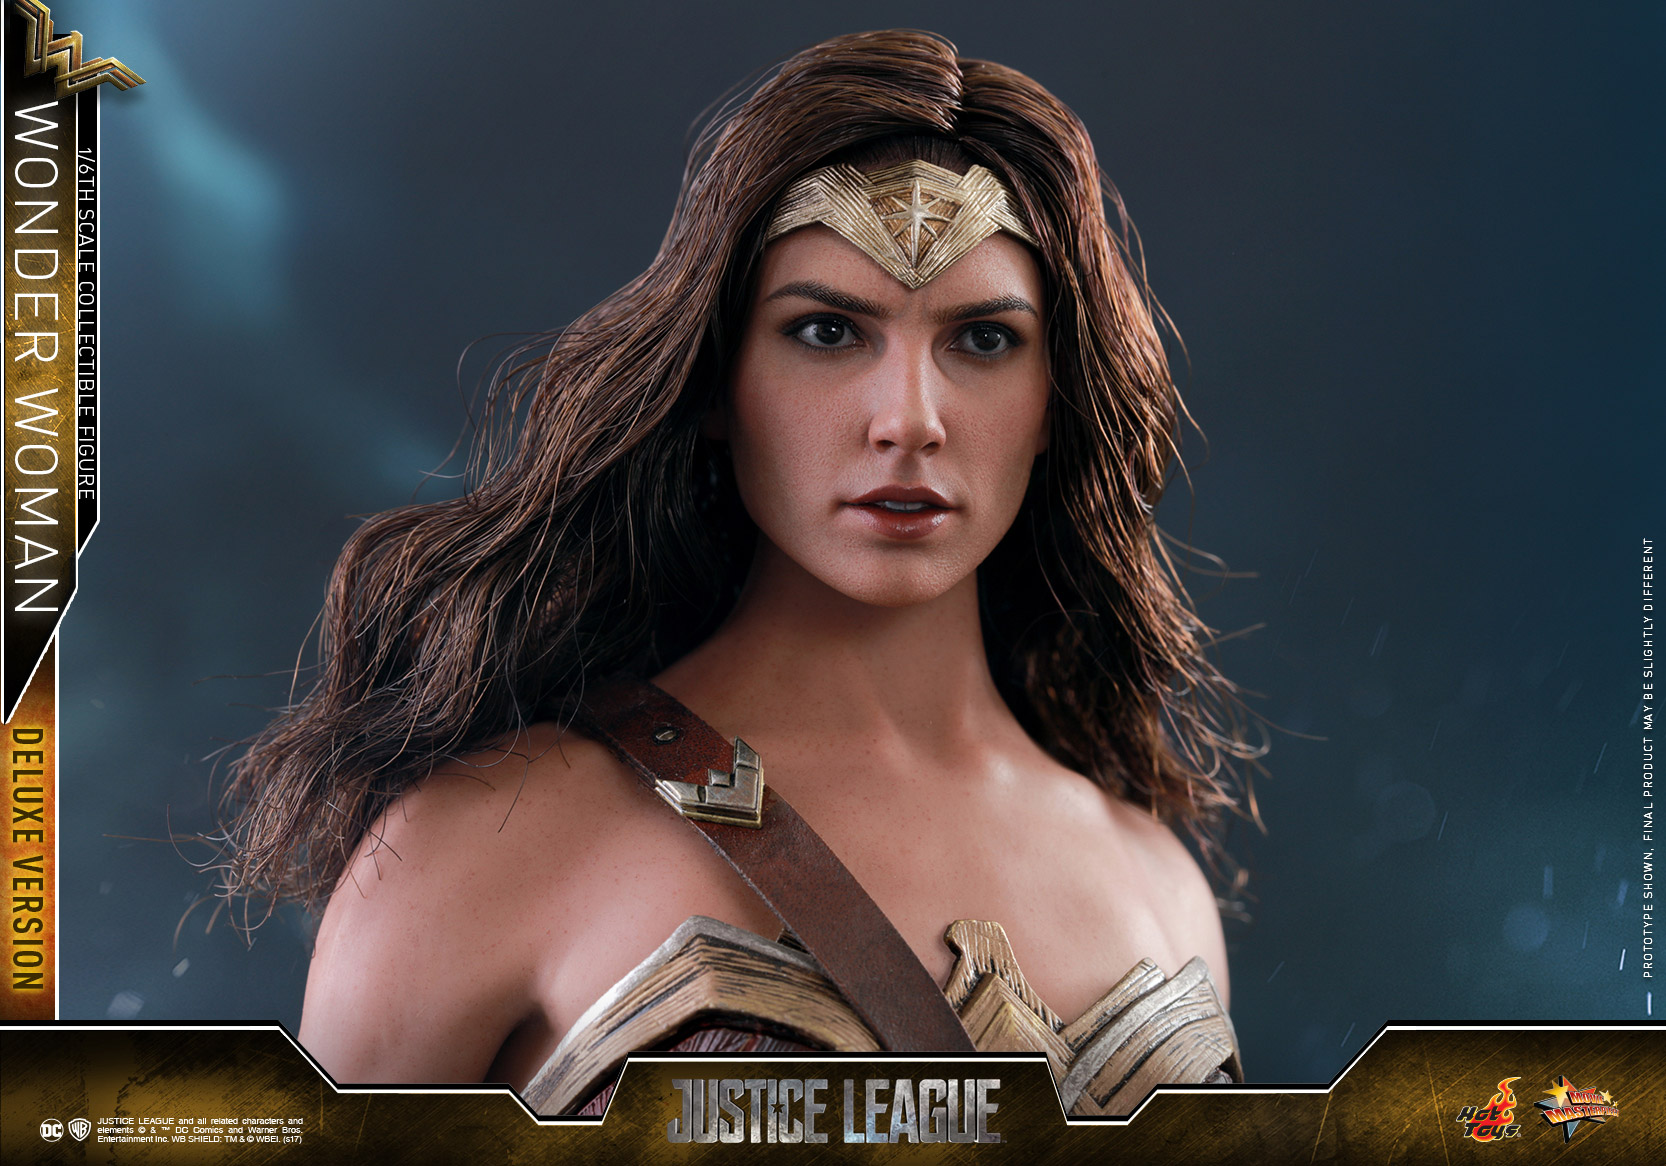 Hot-Toys-Justice-League-Wonder-Woman-collectible-figure-Deluxe_PR-21.jpg